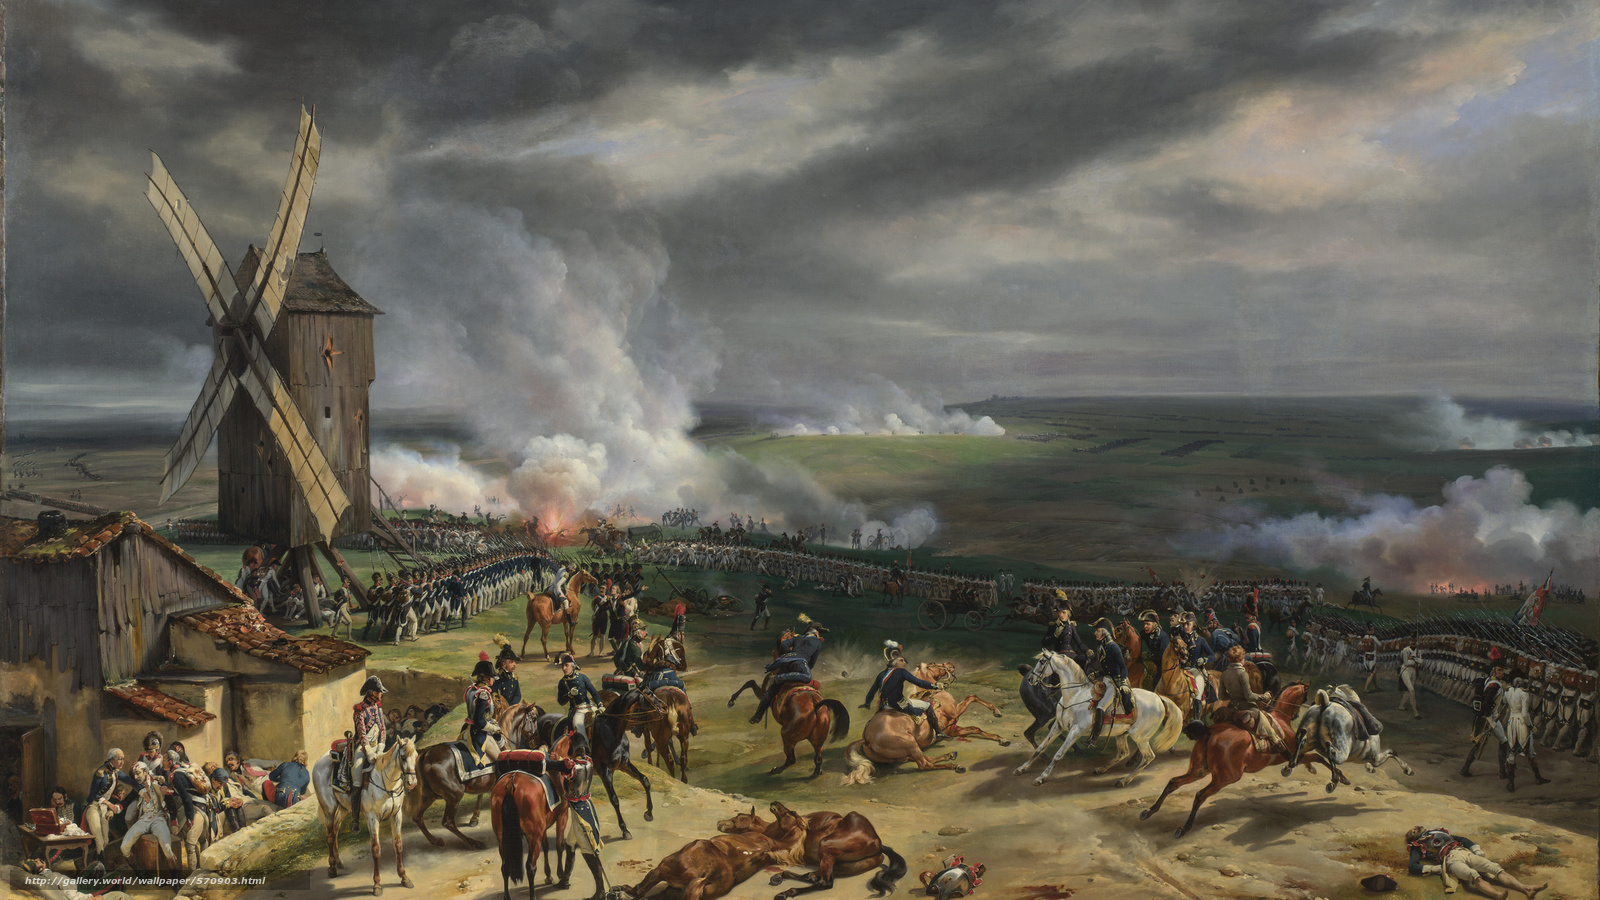 sixteen most significant events in us history between 1789 to 1975